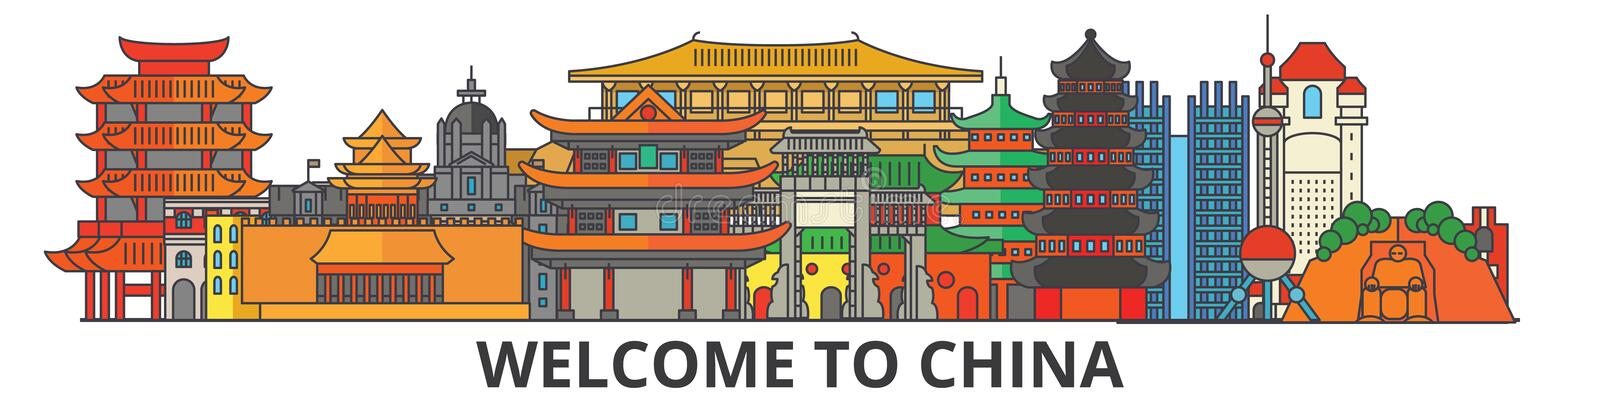 China outline skyline, chinese flat thin line icons, landmarks, illustrations. China cityscape, chinese vector travel stock illustration